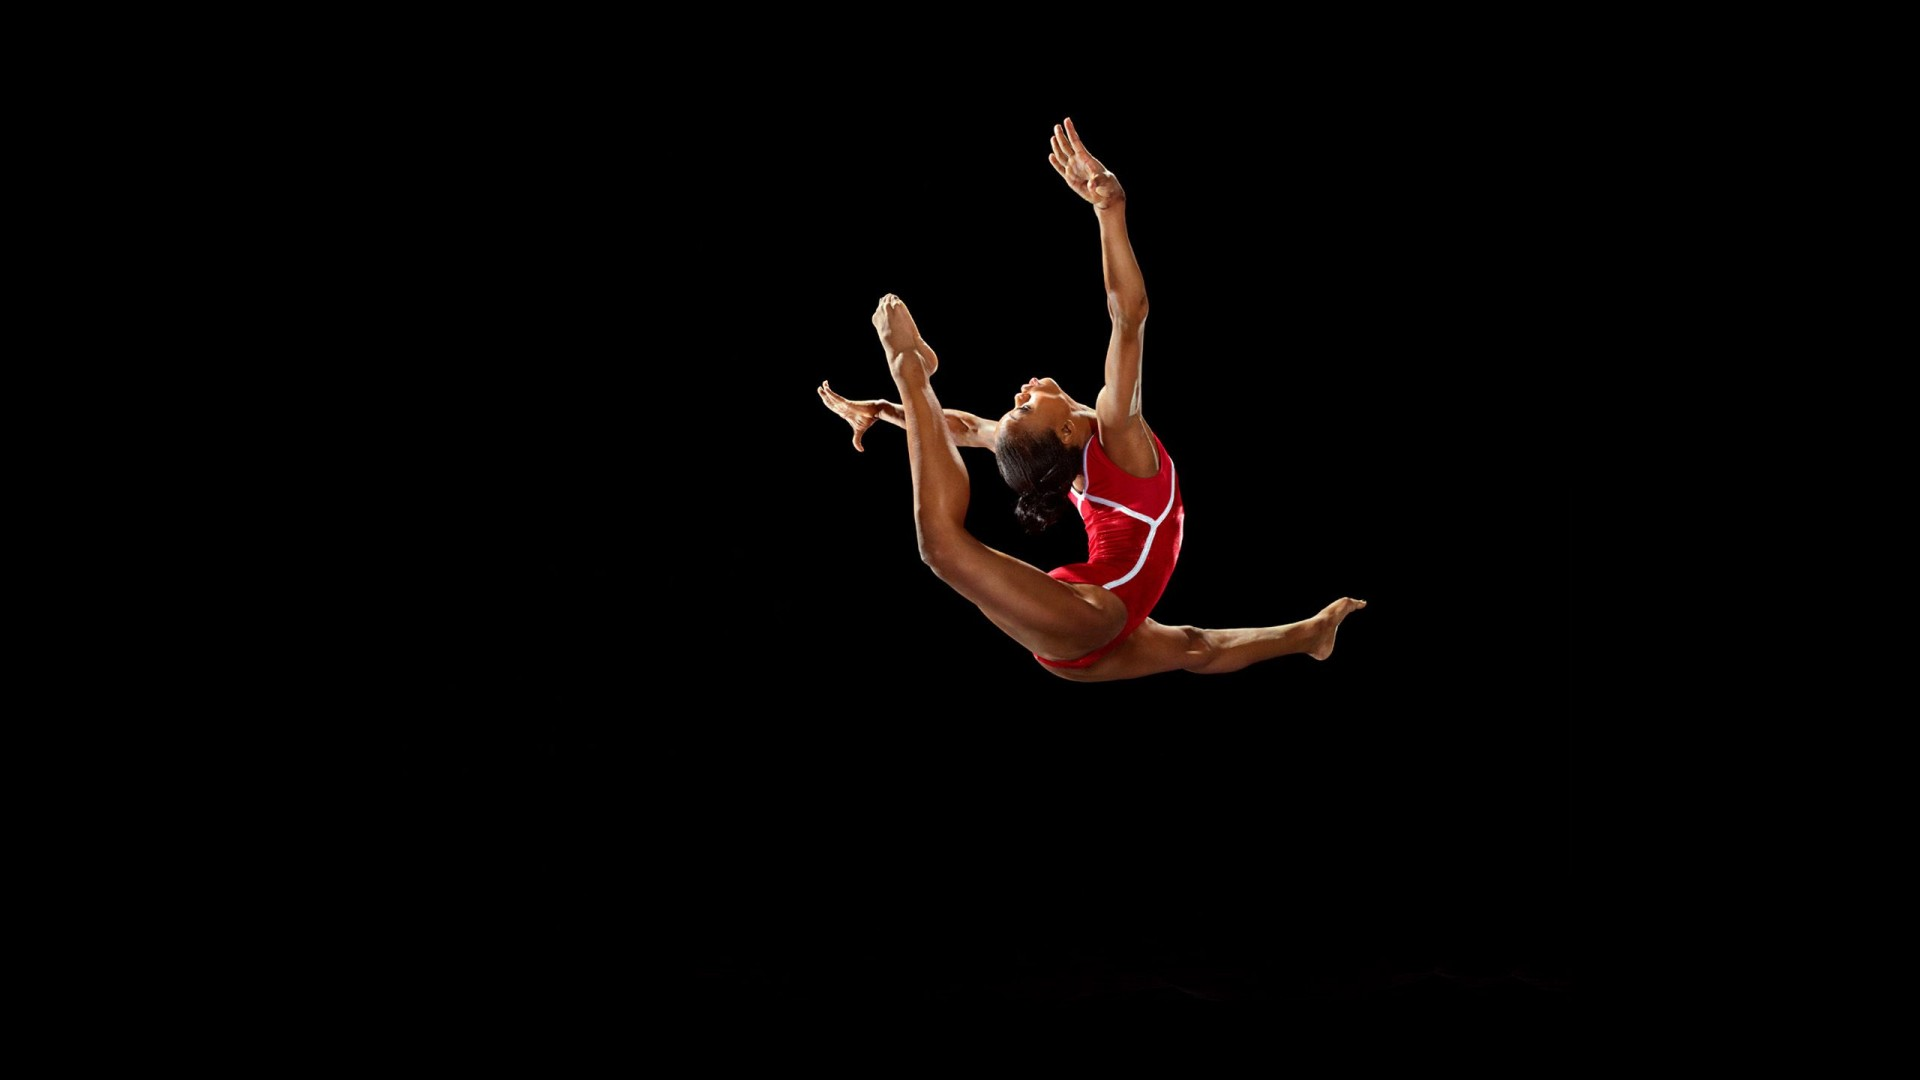 wallpaper.wiki-Gymnastics-Wallpapers-HD-PIC-WPE005827